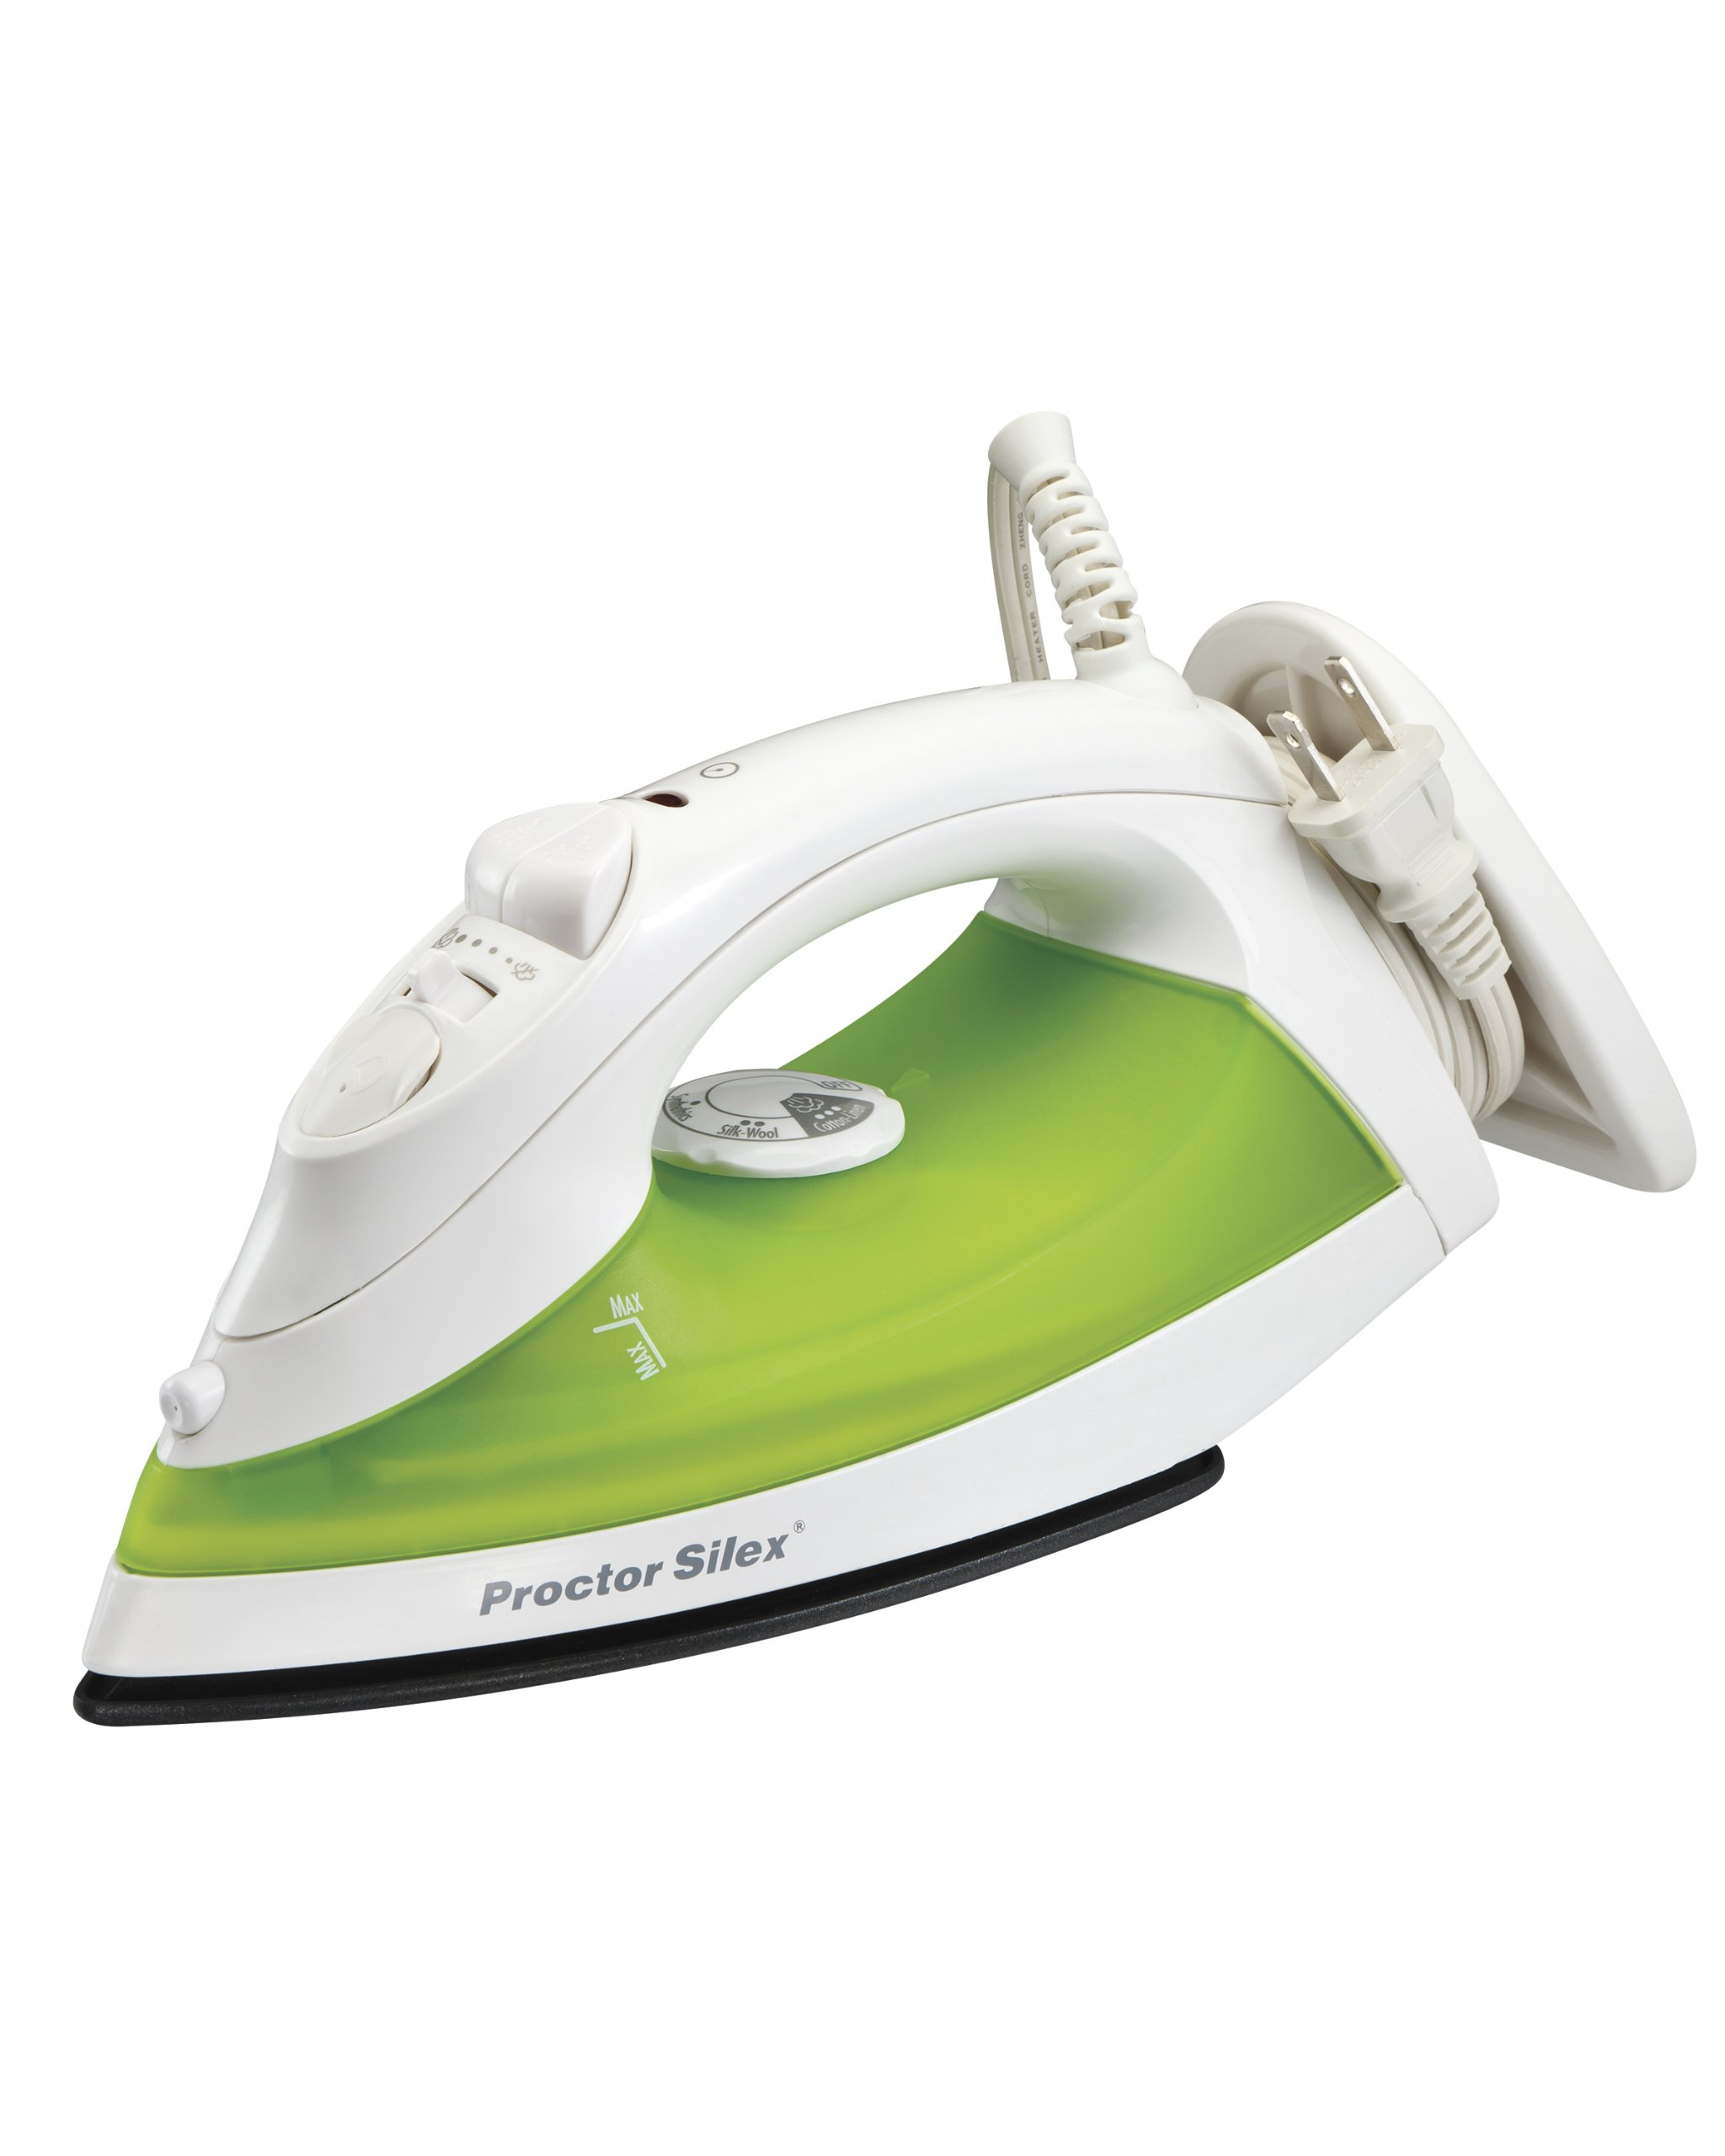 Proctor Silex Steam Iron with Cord Wrap & Nonstick Soleplate (17175)